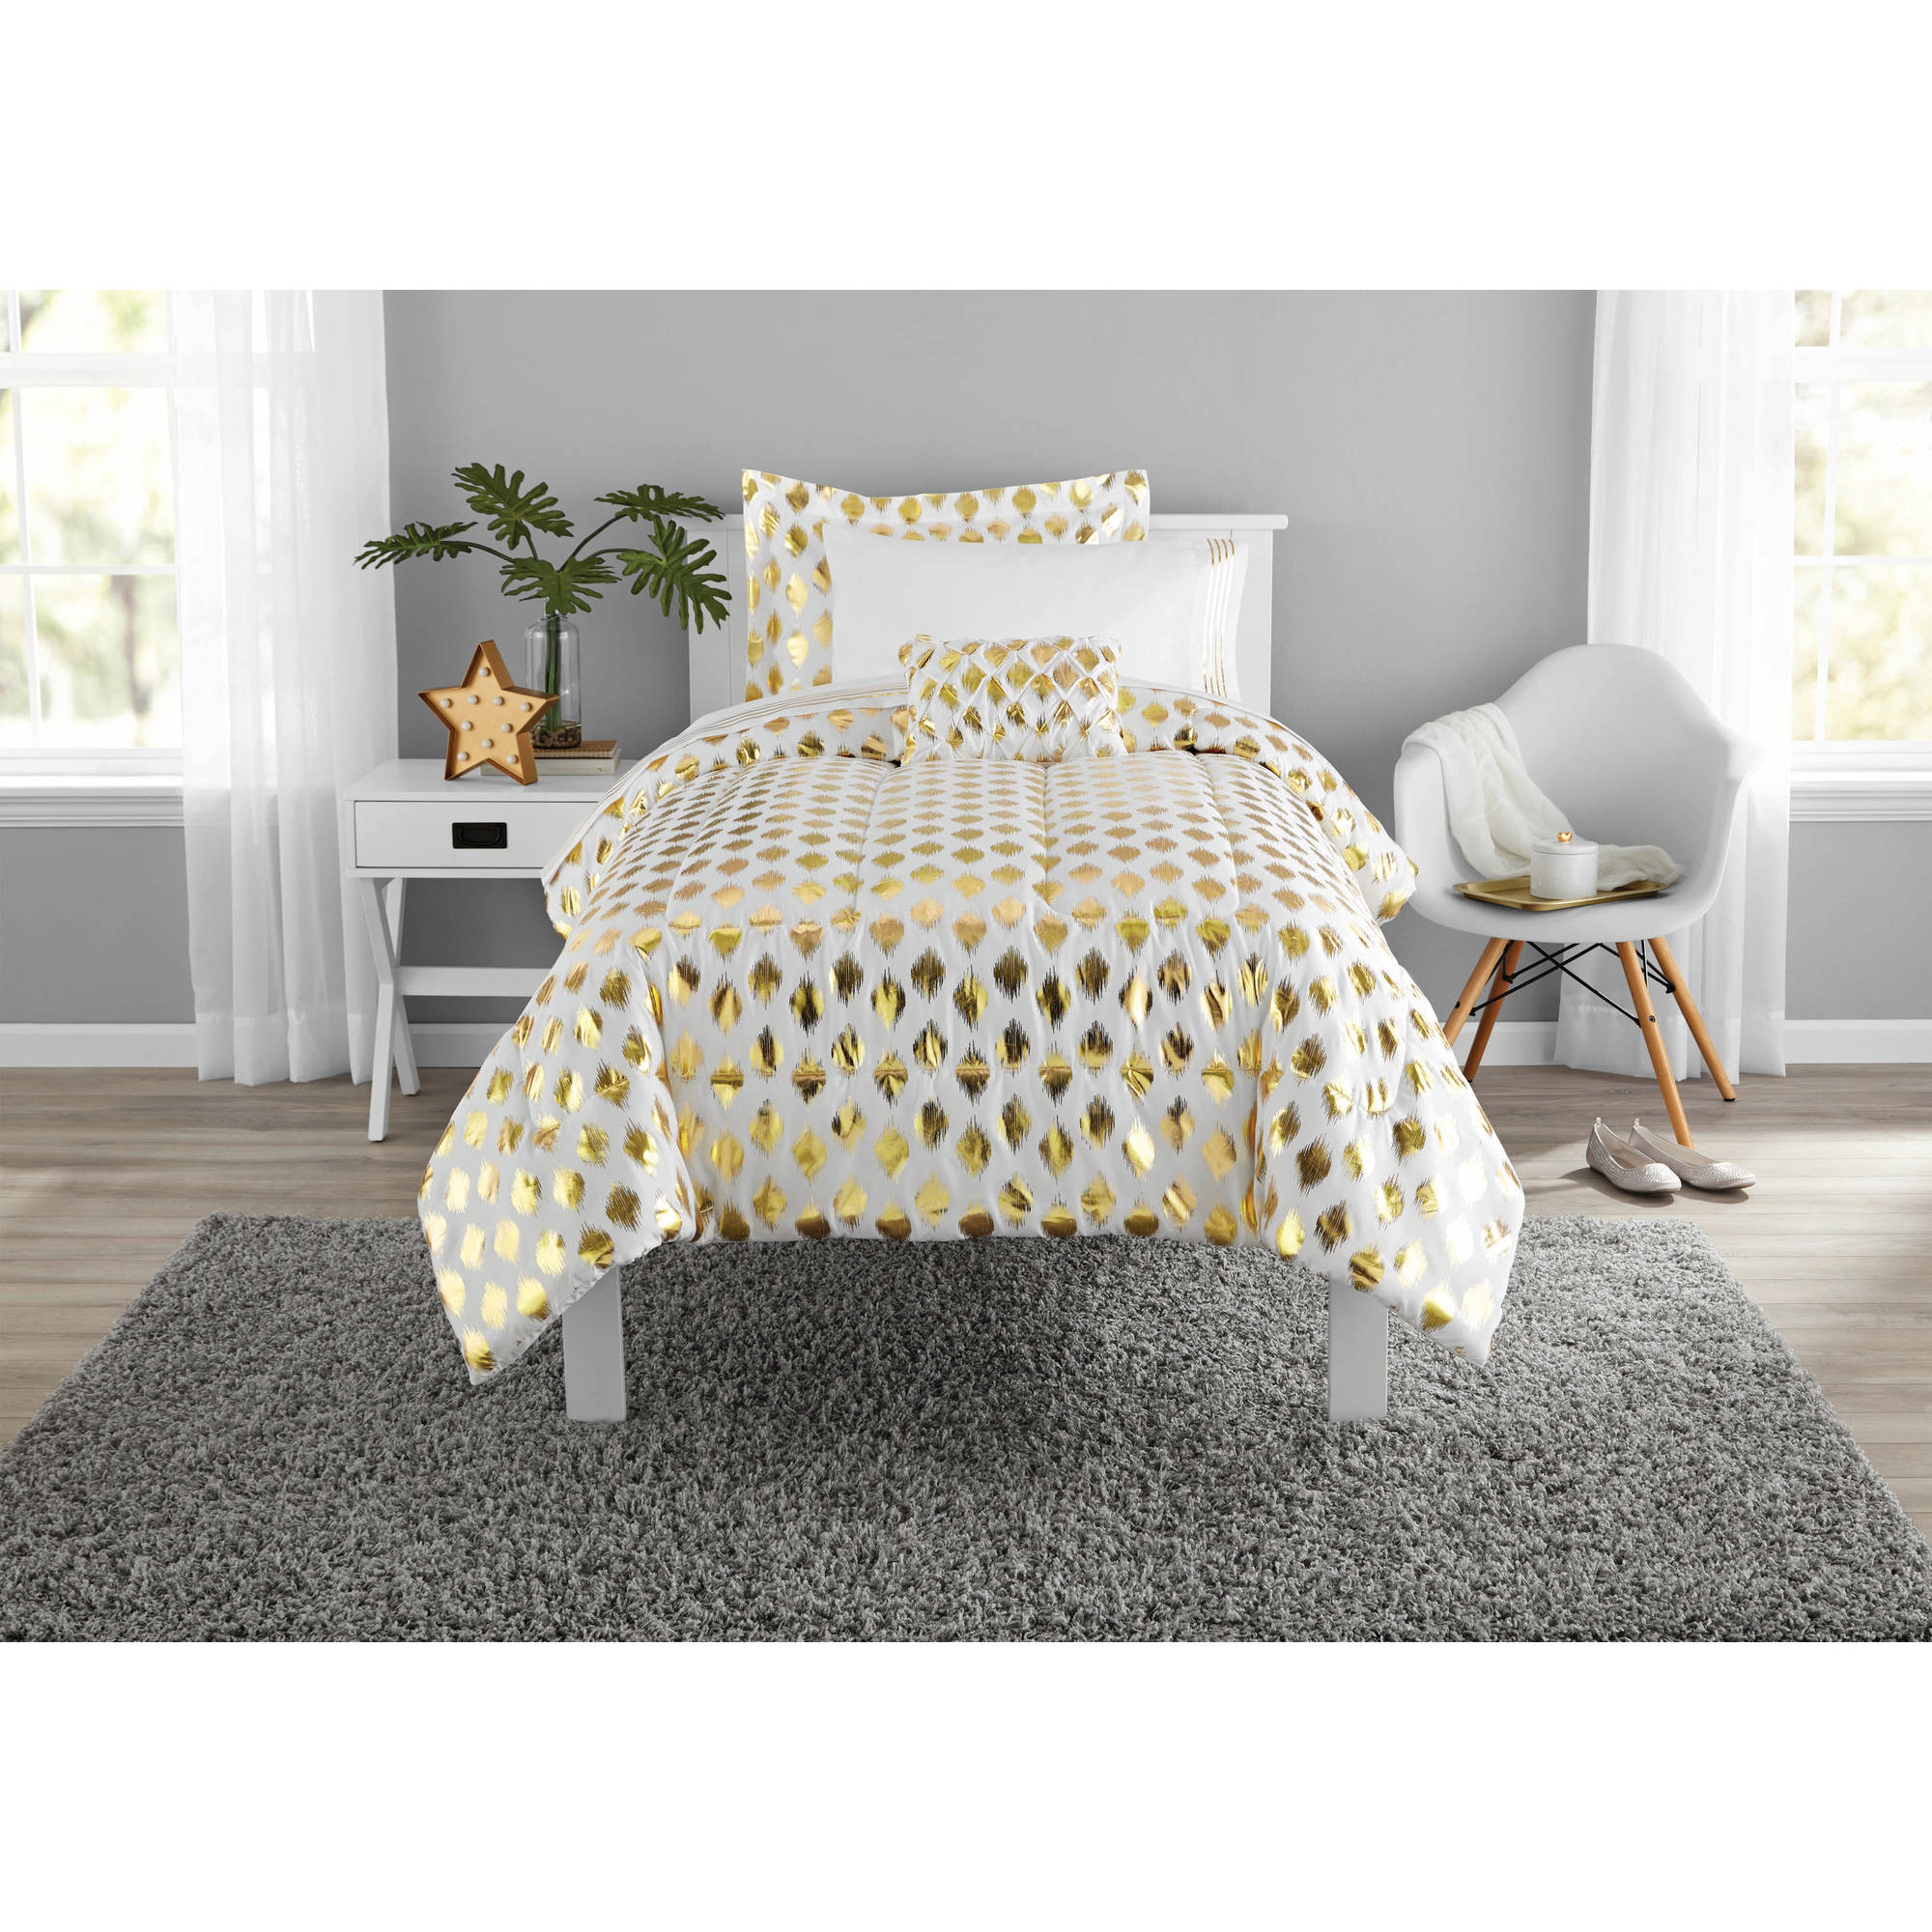 Mainstays Gold Dot Bed In A Bag Bedding Twin Twin Xl